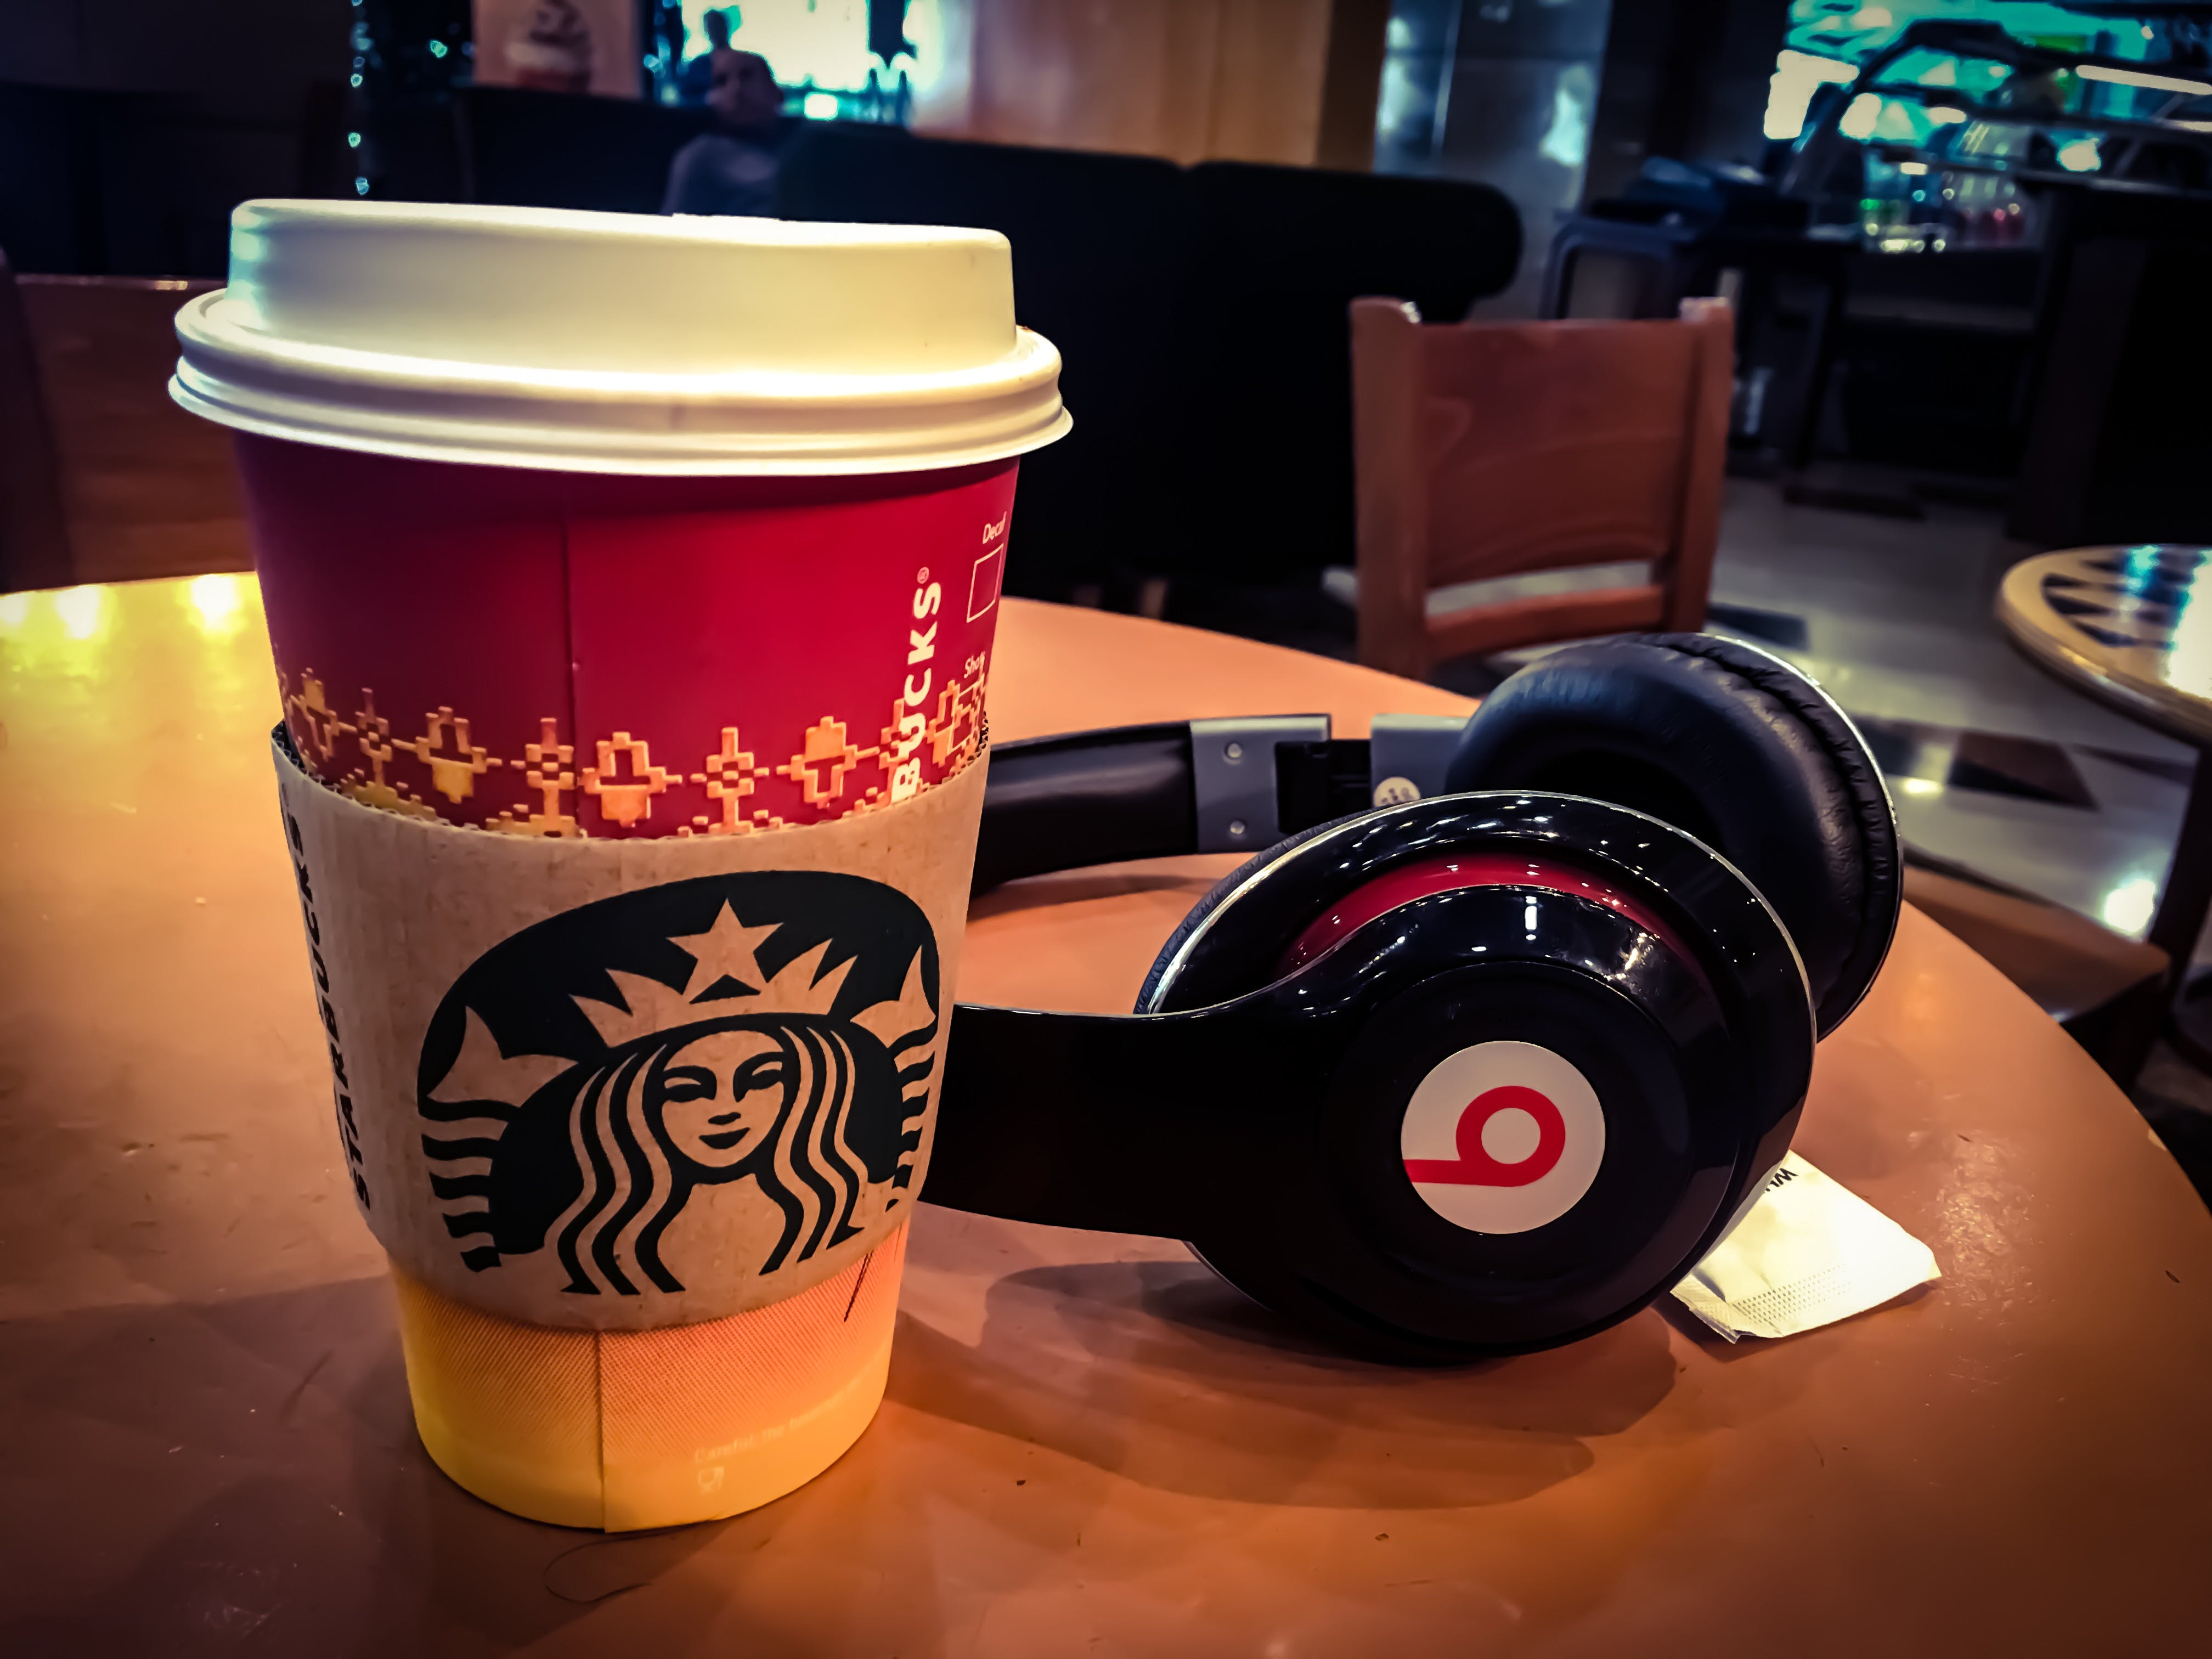 Free stock photo of #coffee #beats #Travel #Airport #waiting #iphone